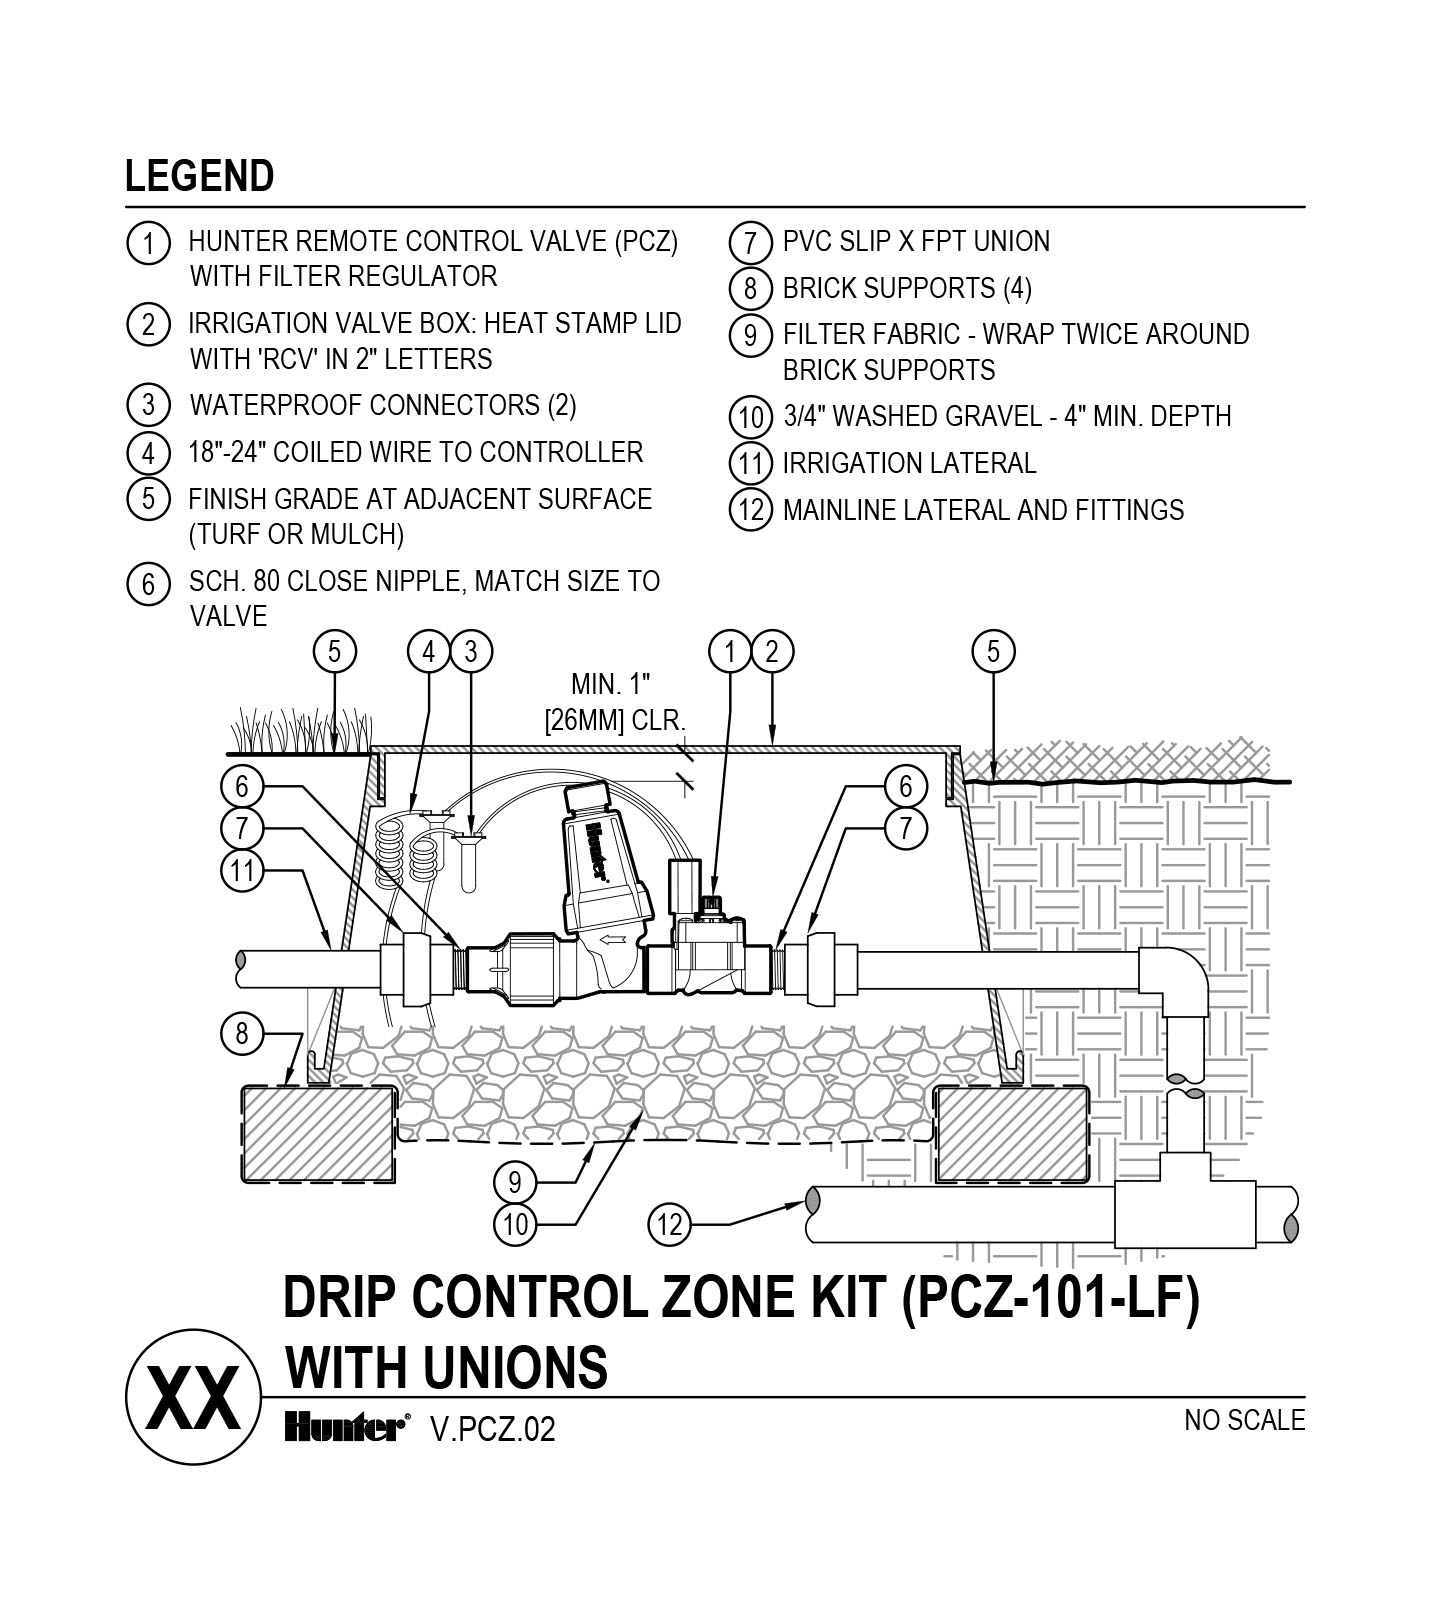 CAD - PCZ-101-LF with Unions